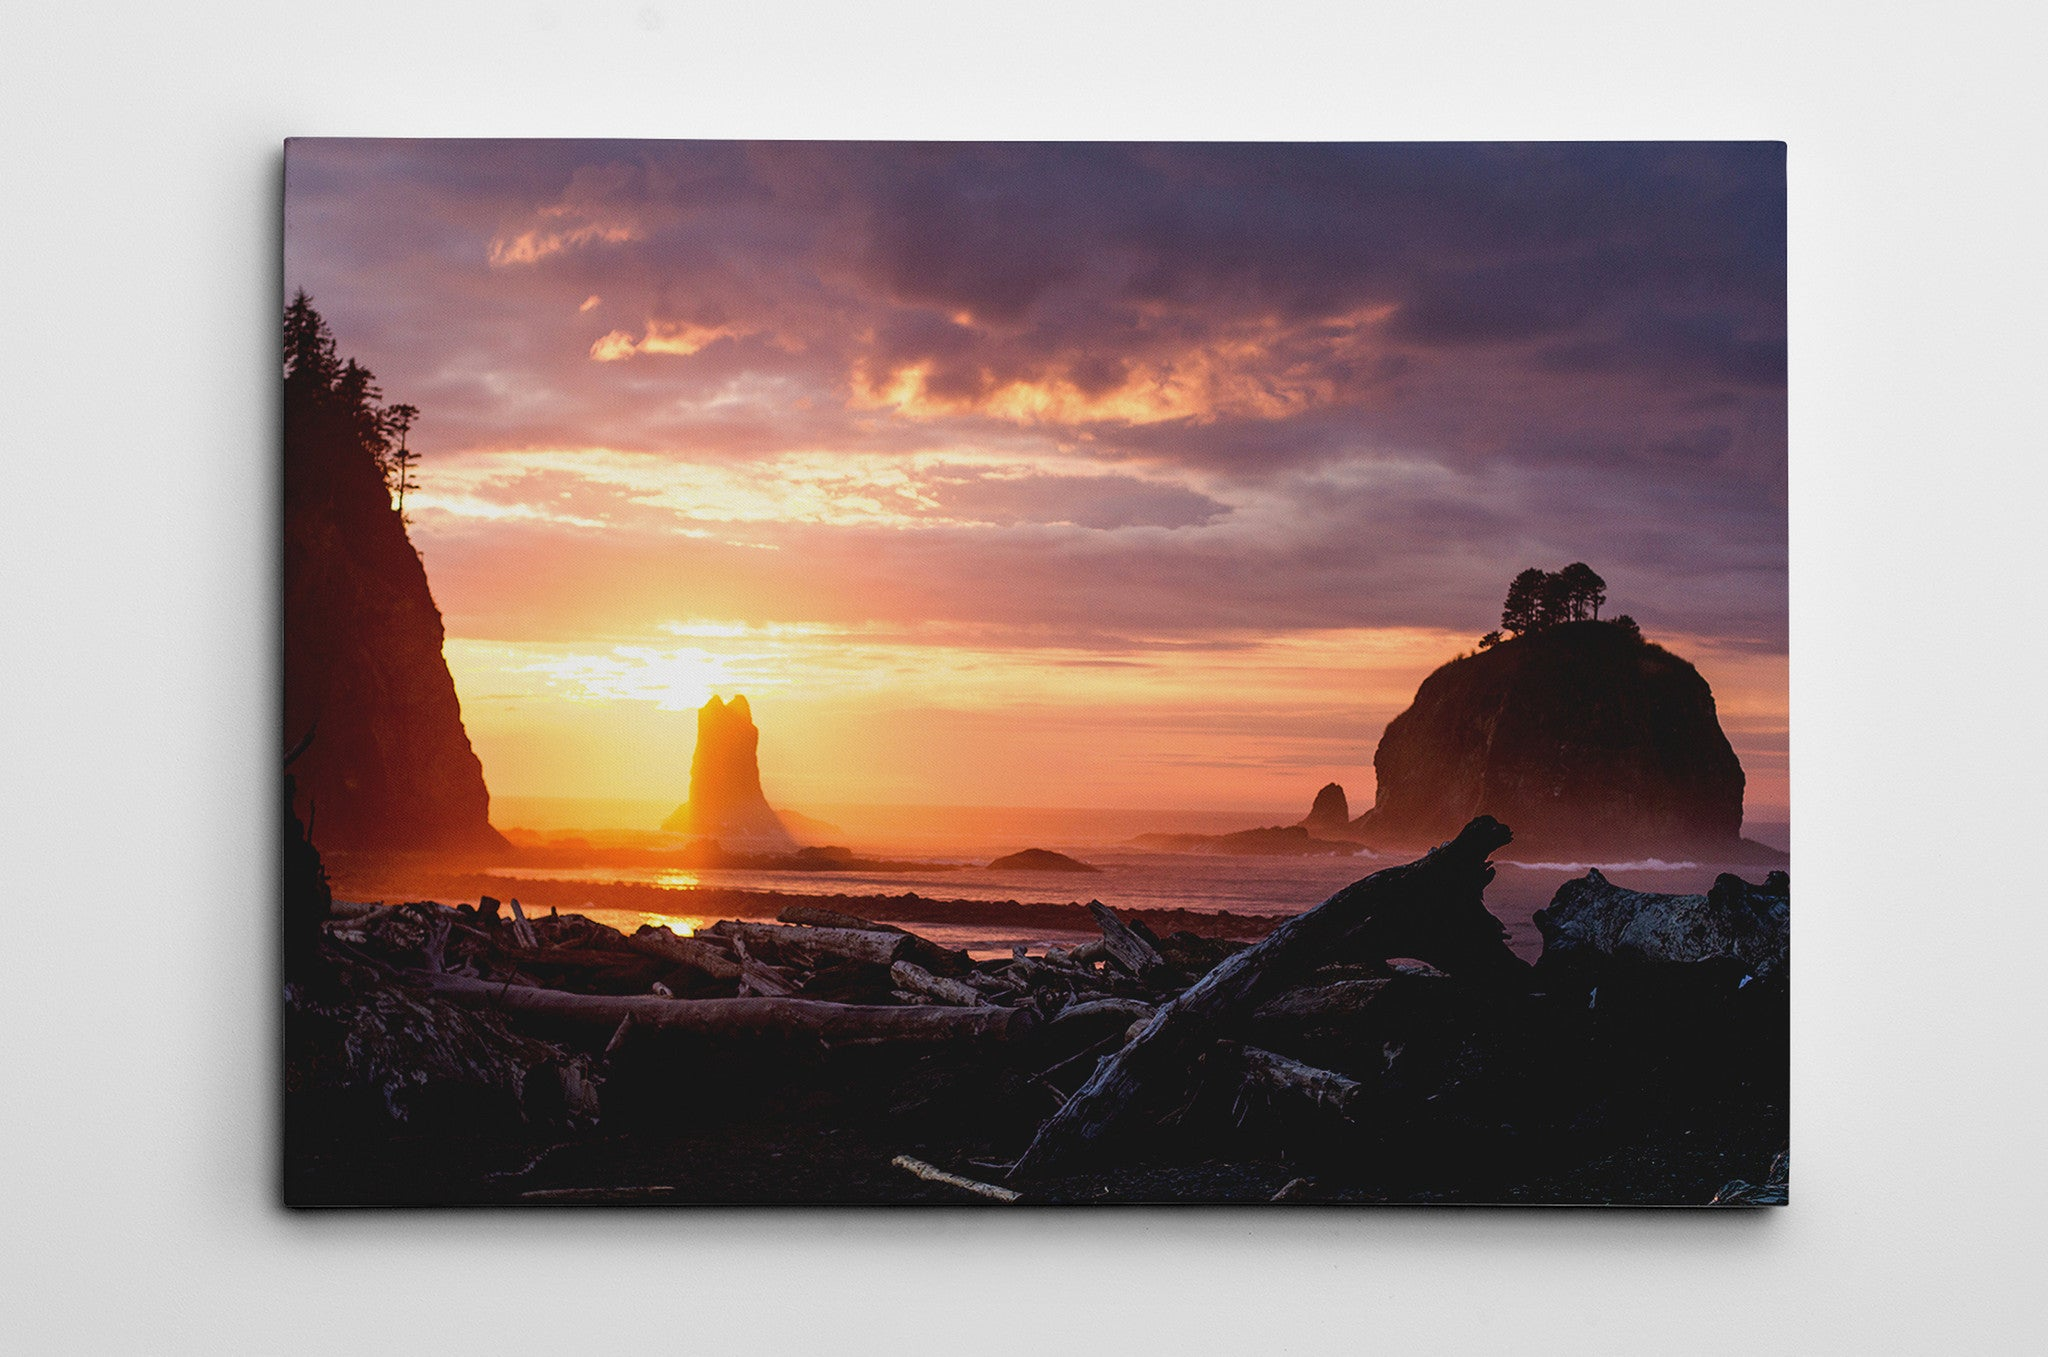 Northern California Sunrise Dave Nelson Signature Series Canvas Print - Cal31.com